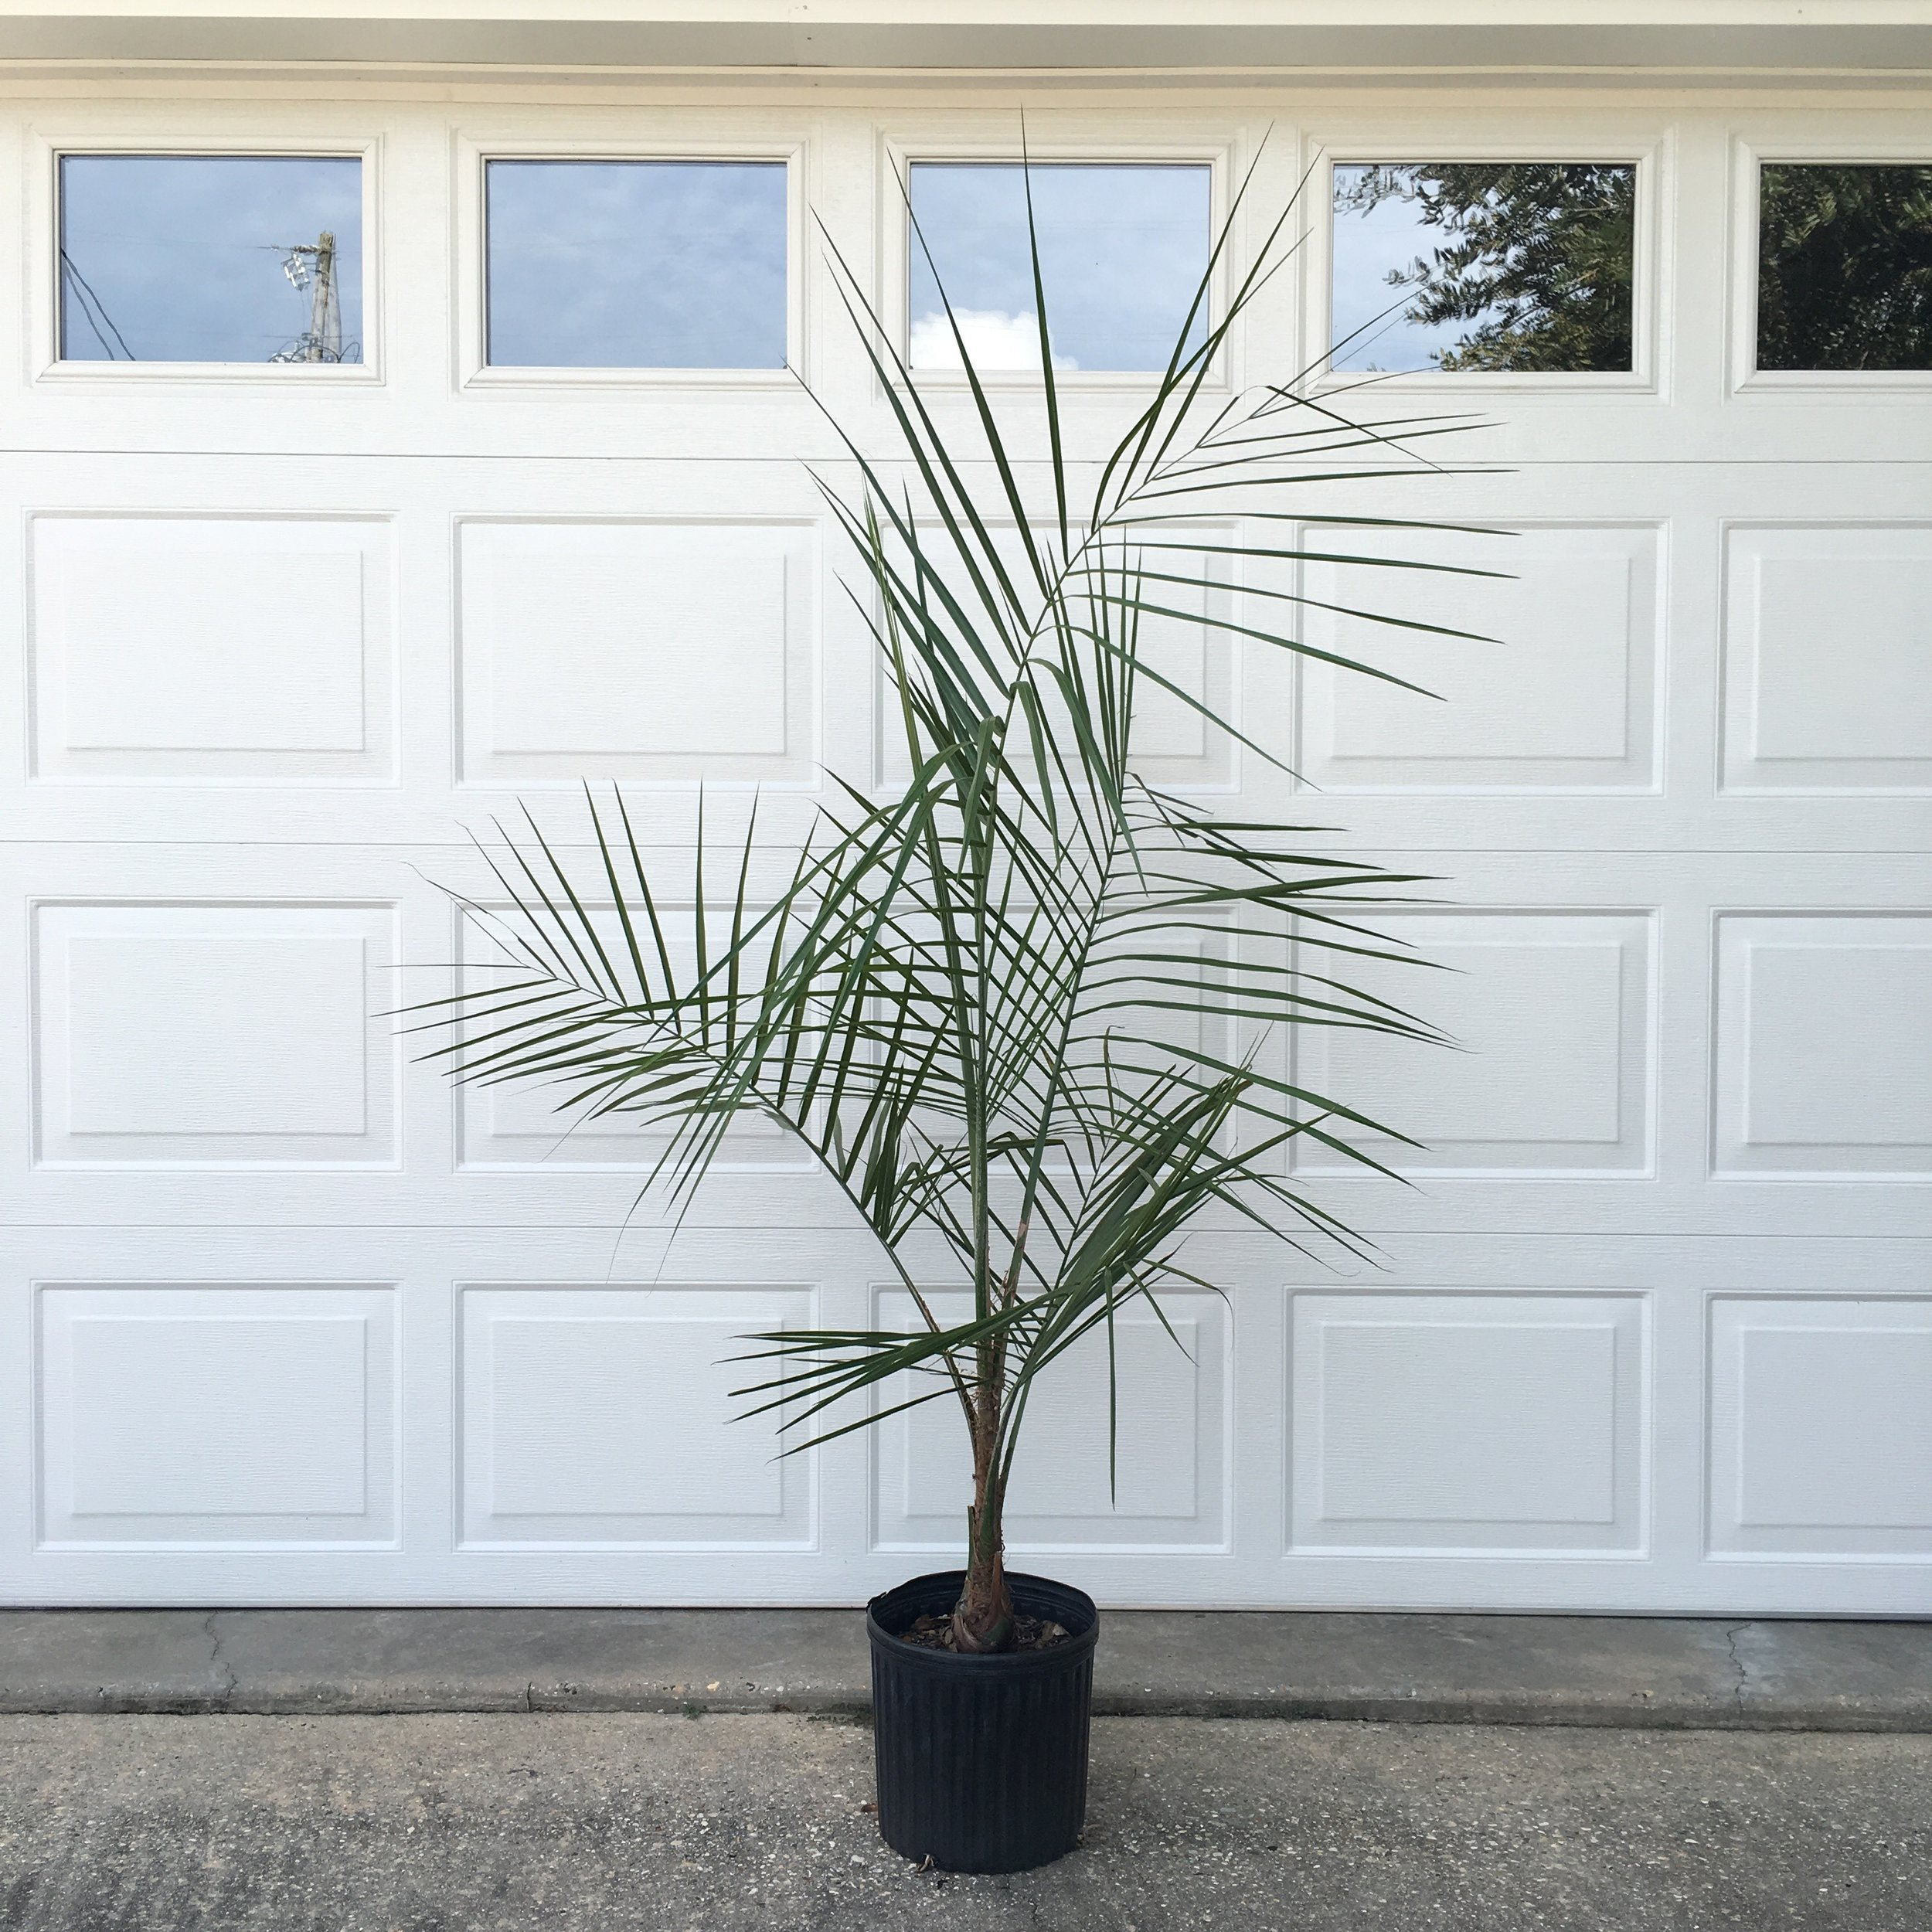 Mule Palm 3 gallon, this palm is 3 years old.